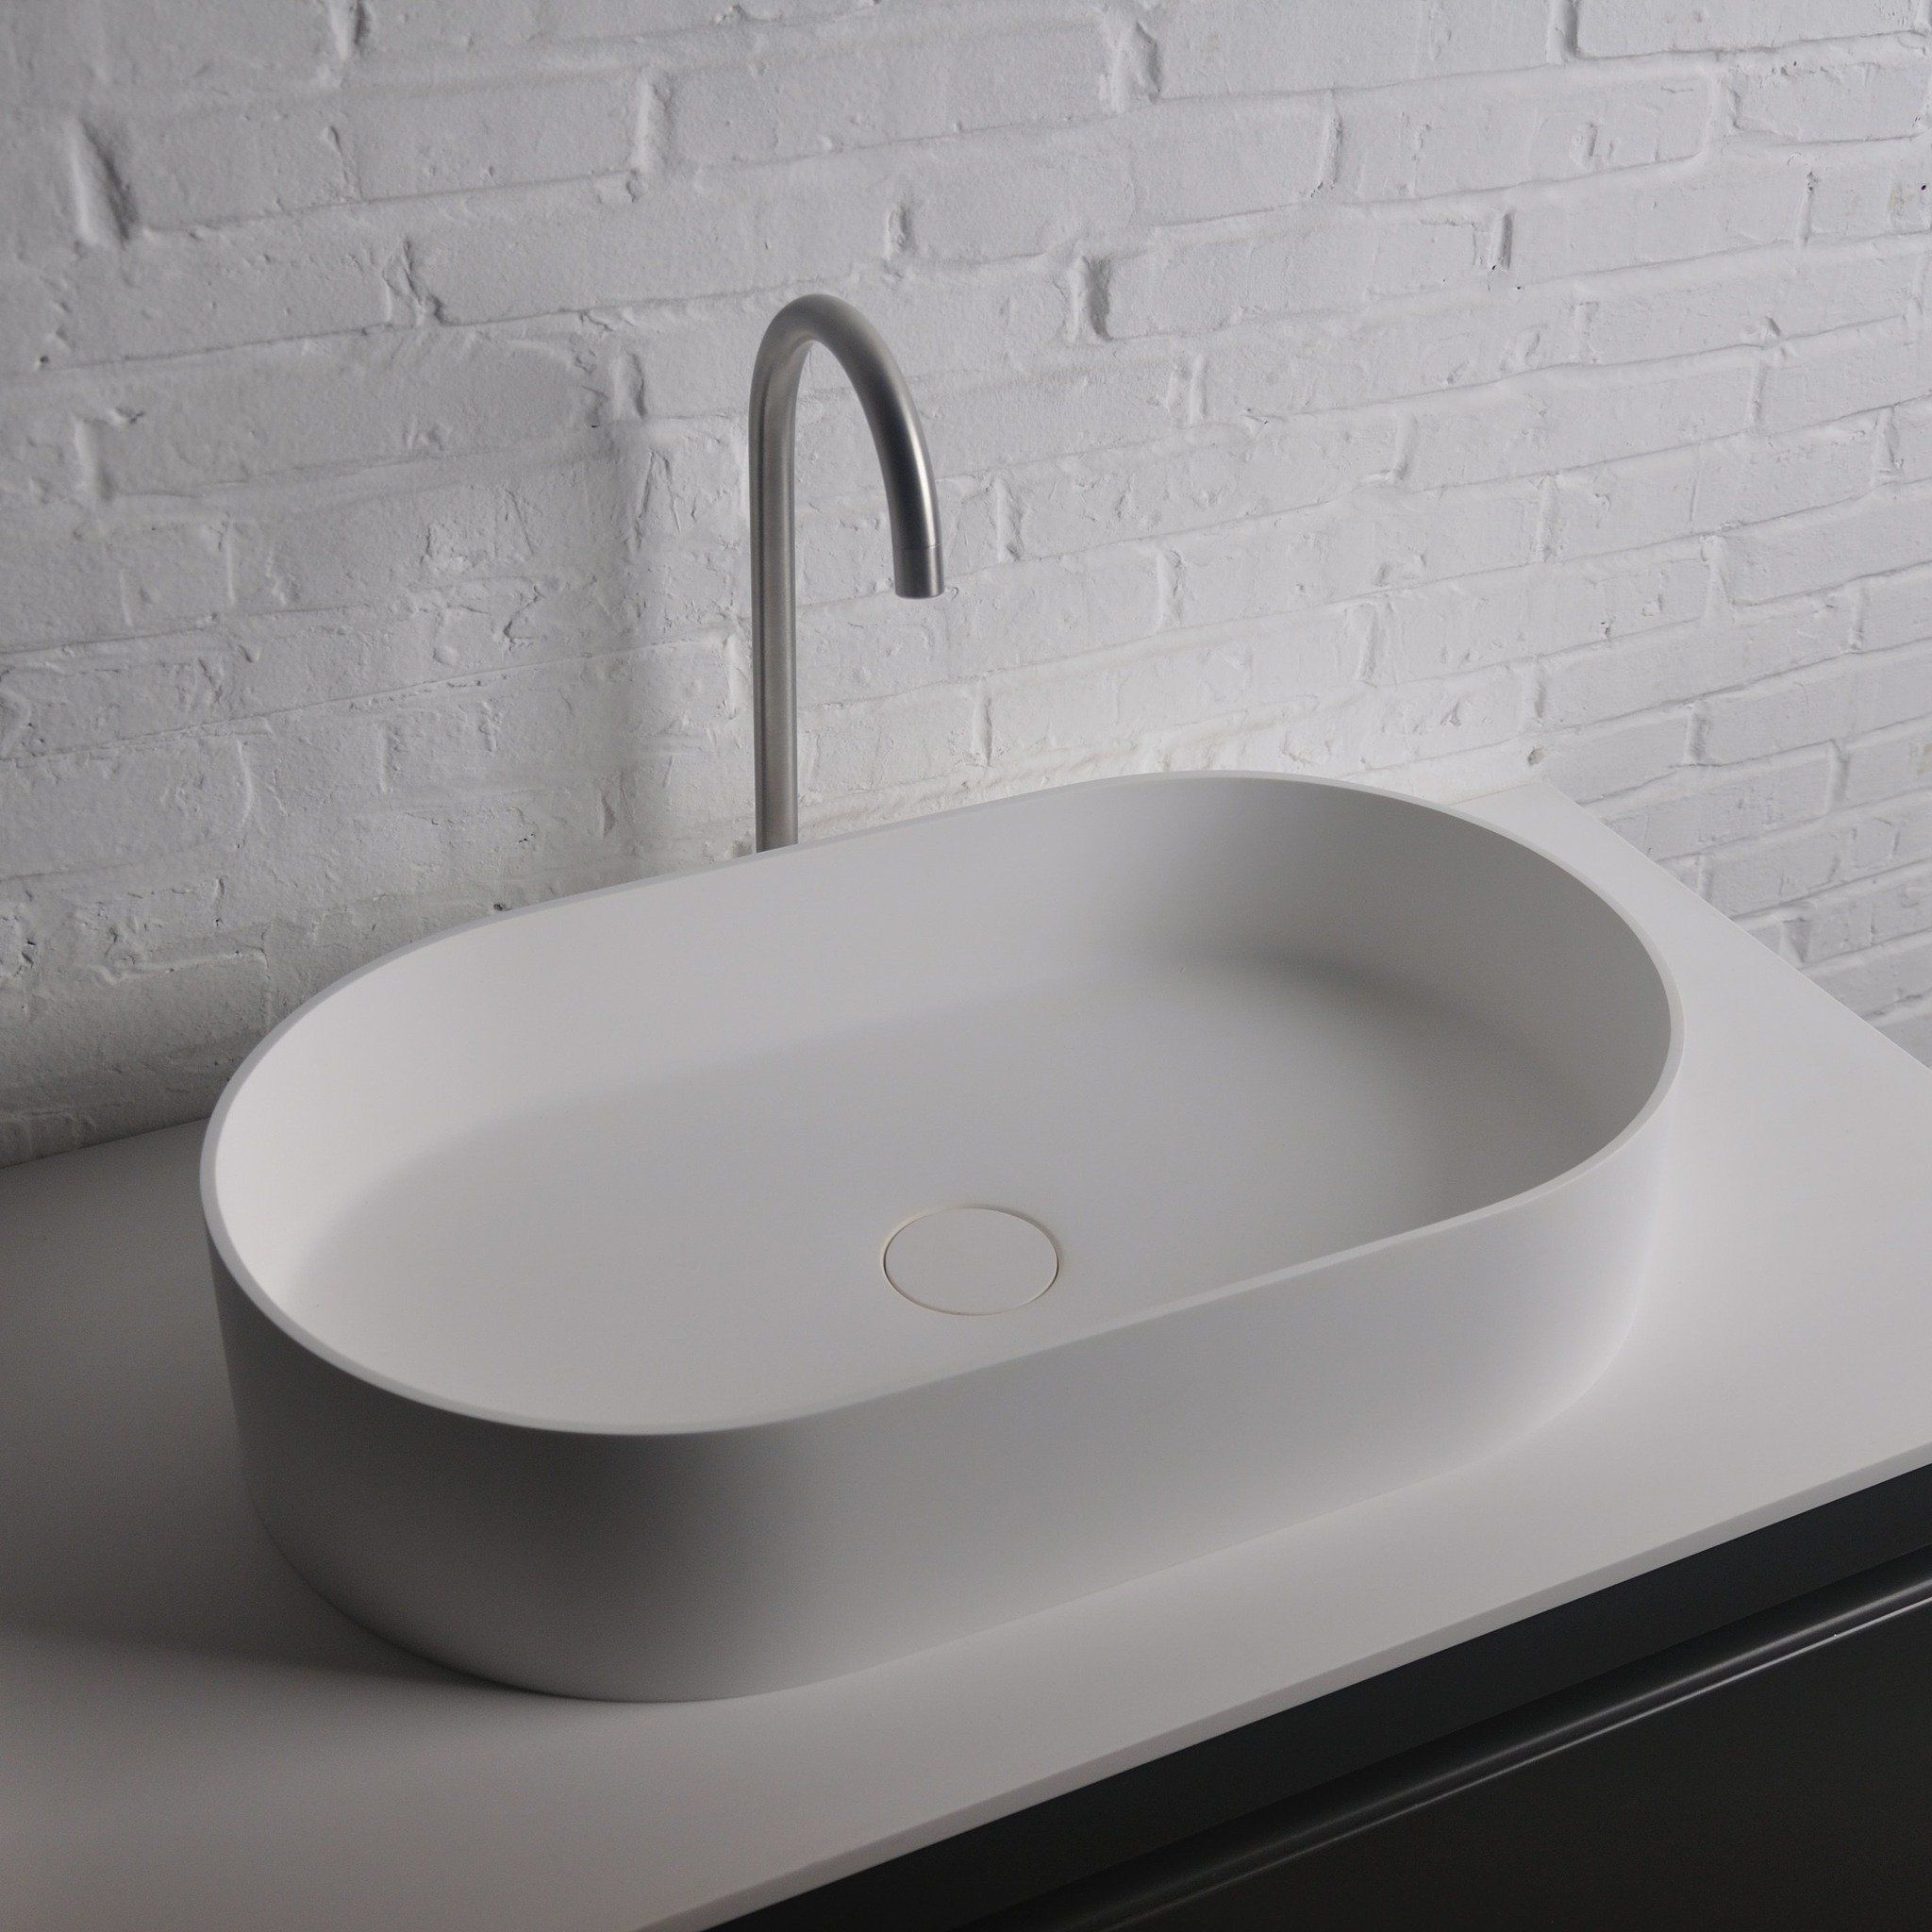 Solidthin Elongated 15 In Washbasin Vessel Sink Bowl Above